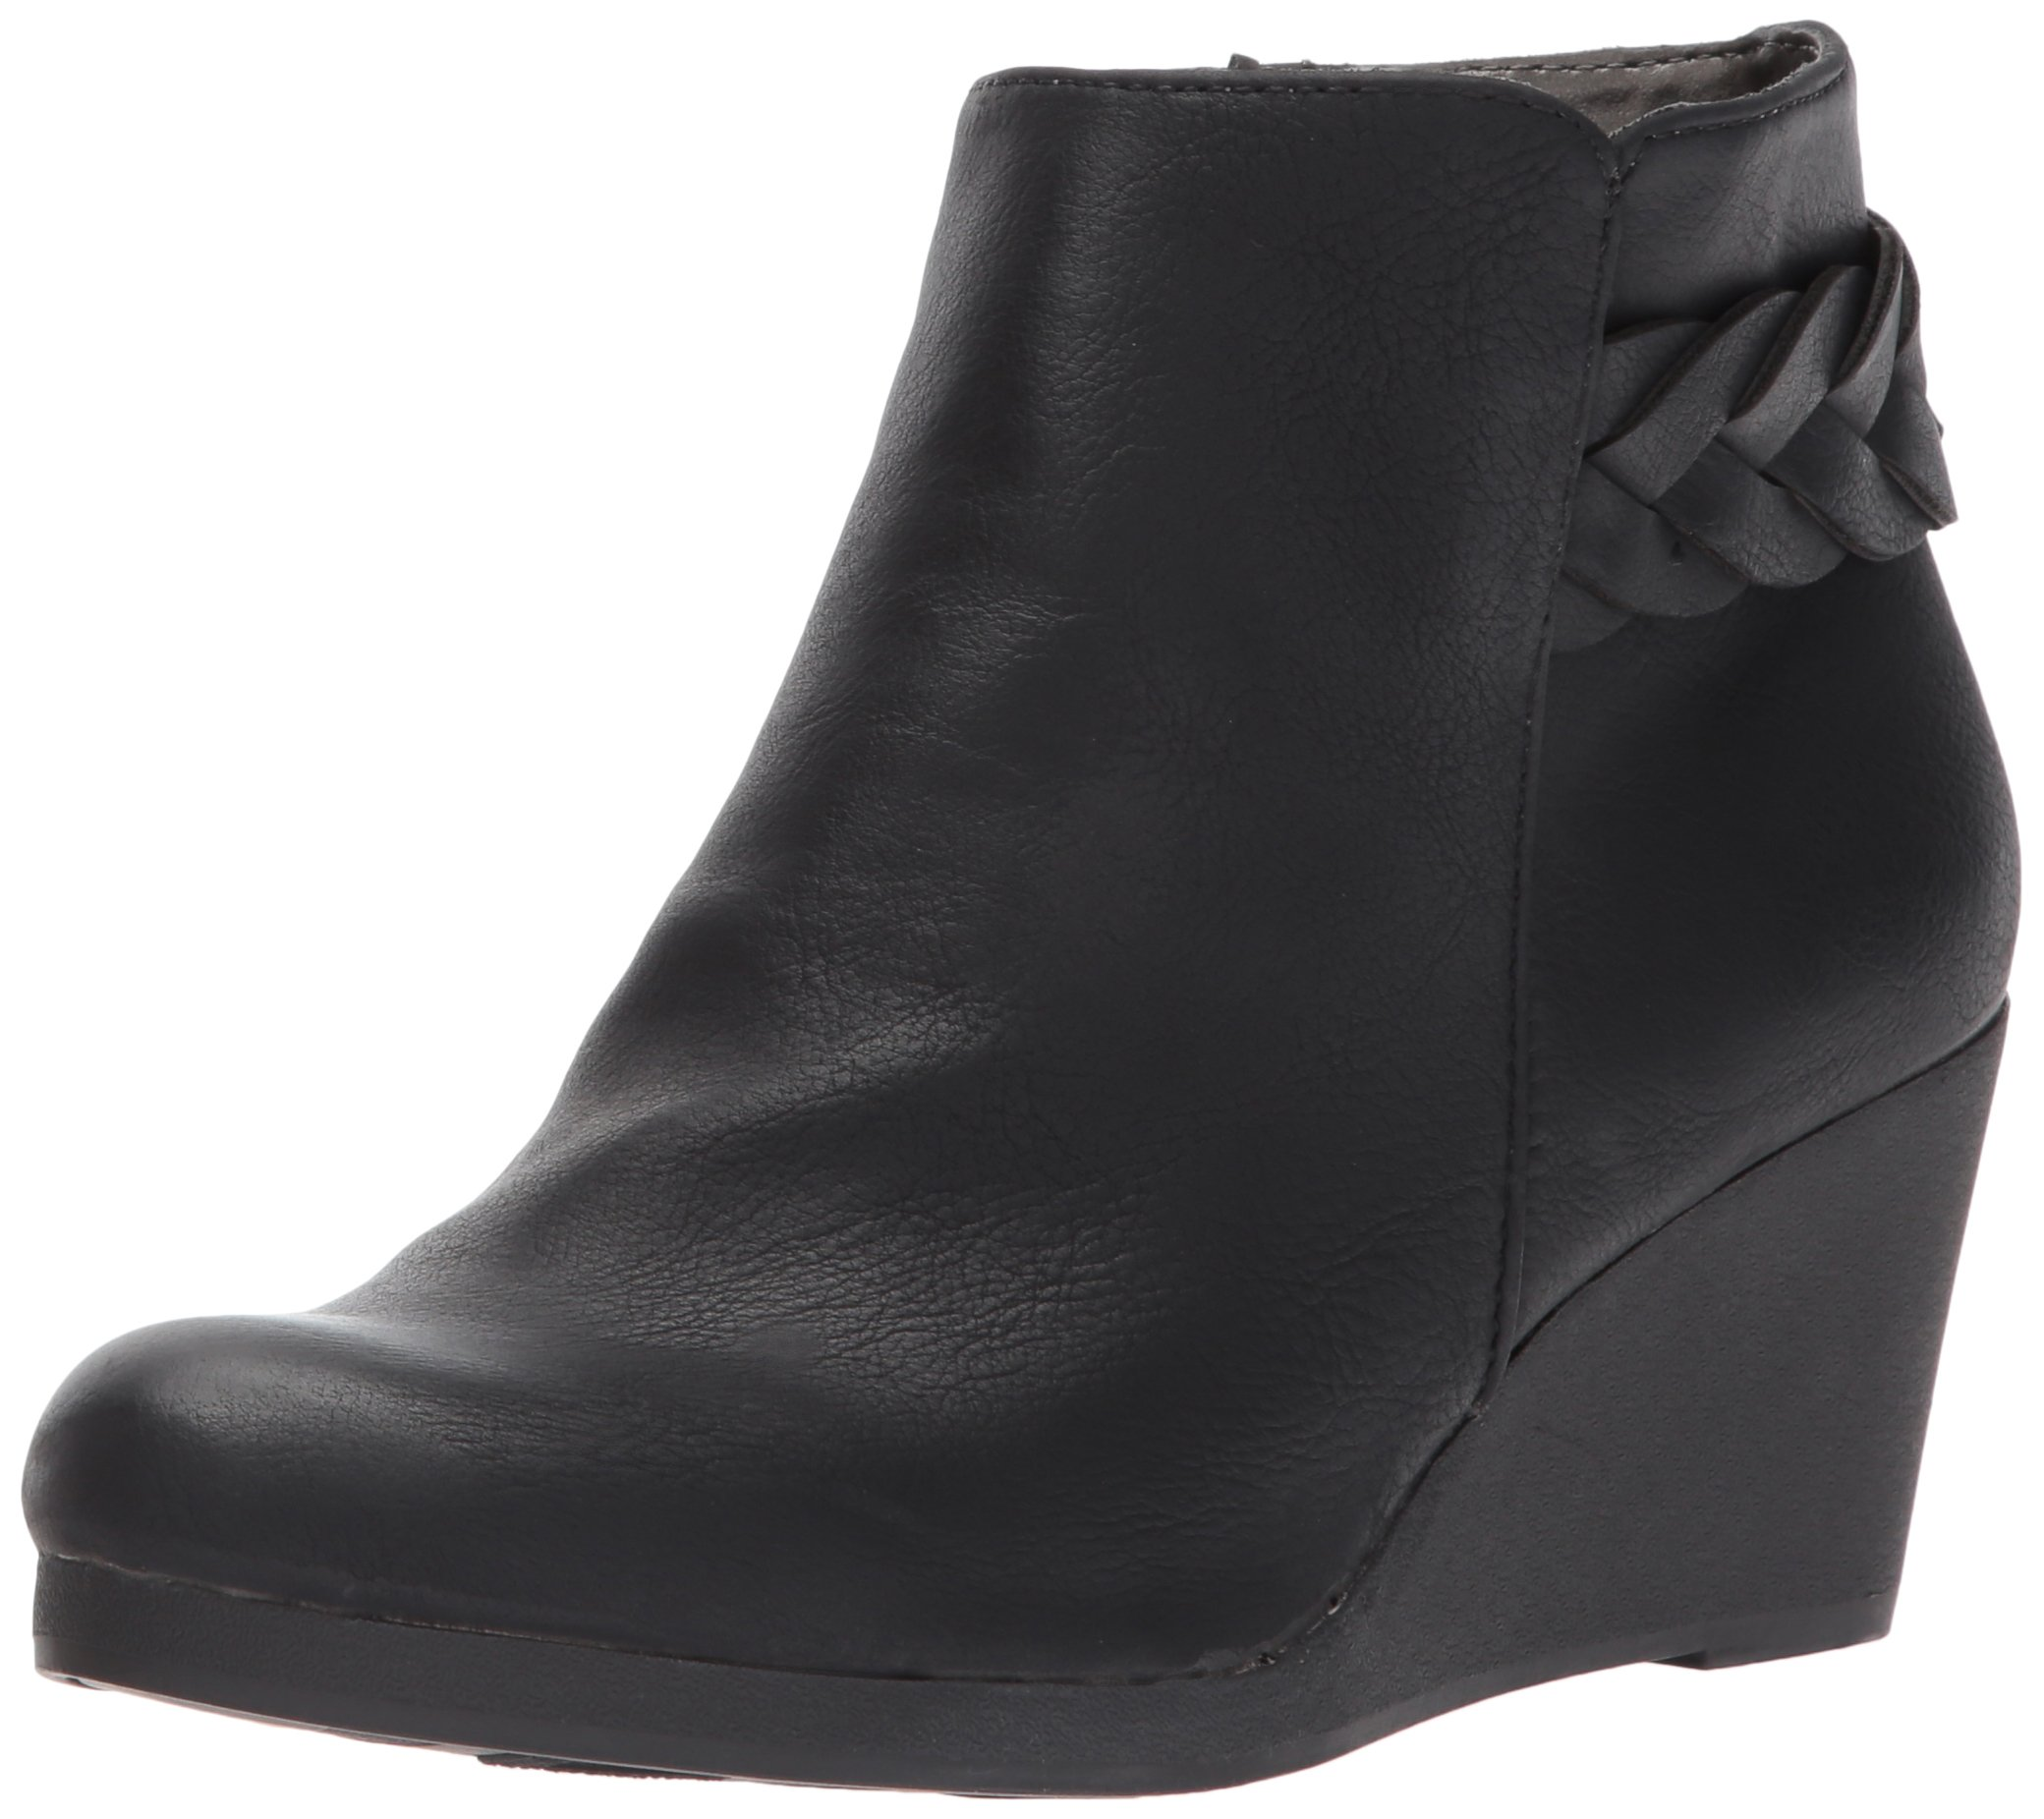 LifeStride Women's Natalia Ankle Bootie, Black, 5 M US